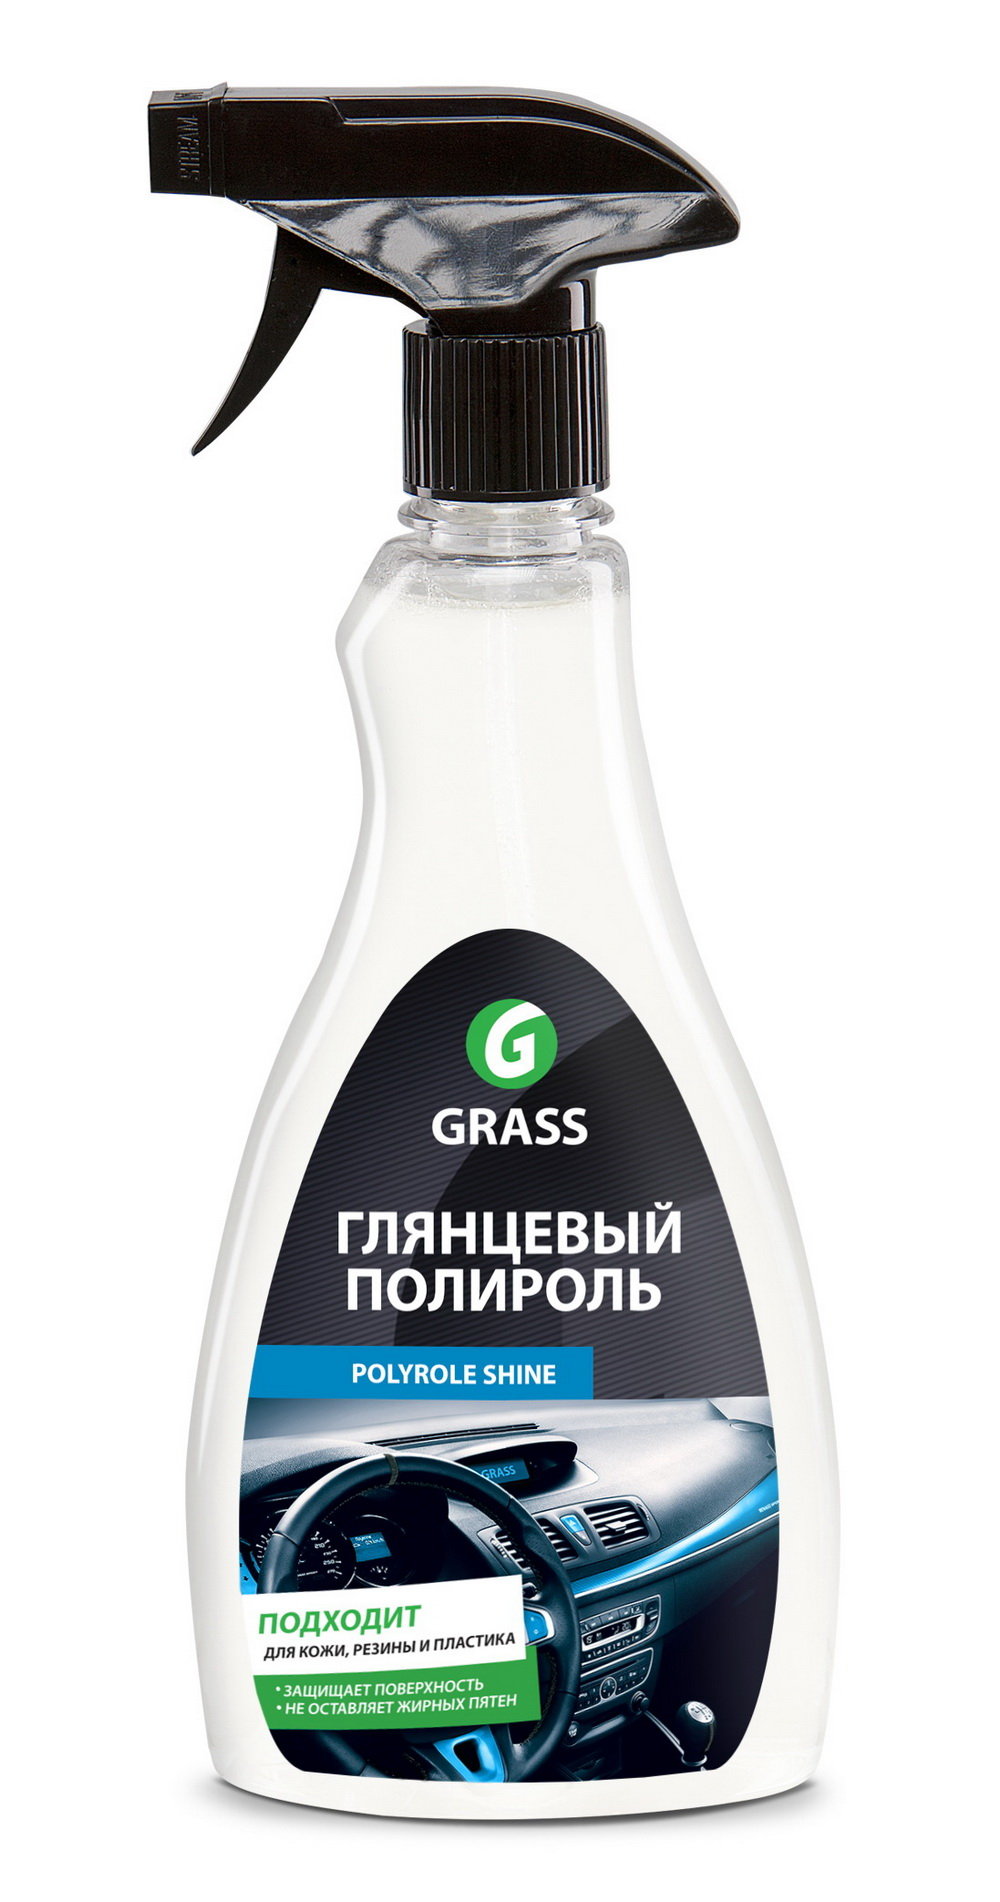 Полироль Grass 340340 polyrole shine